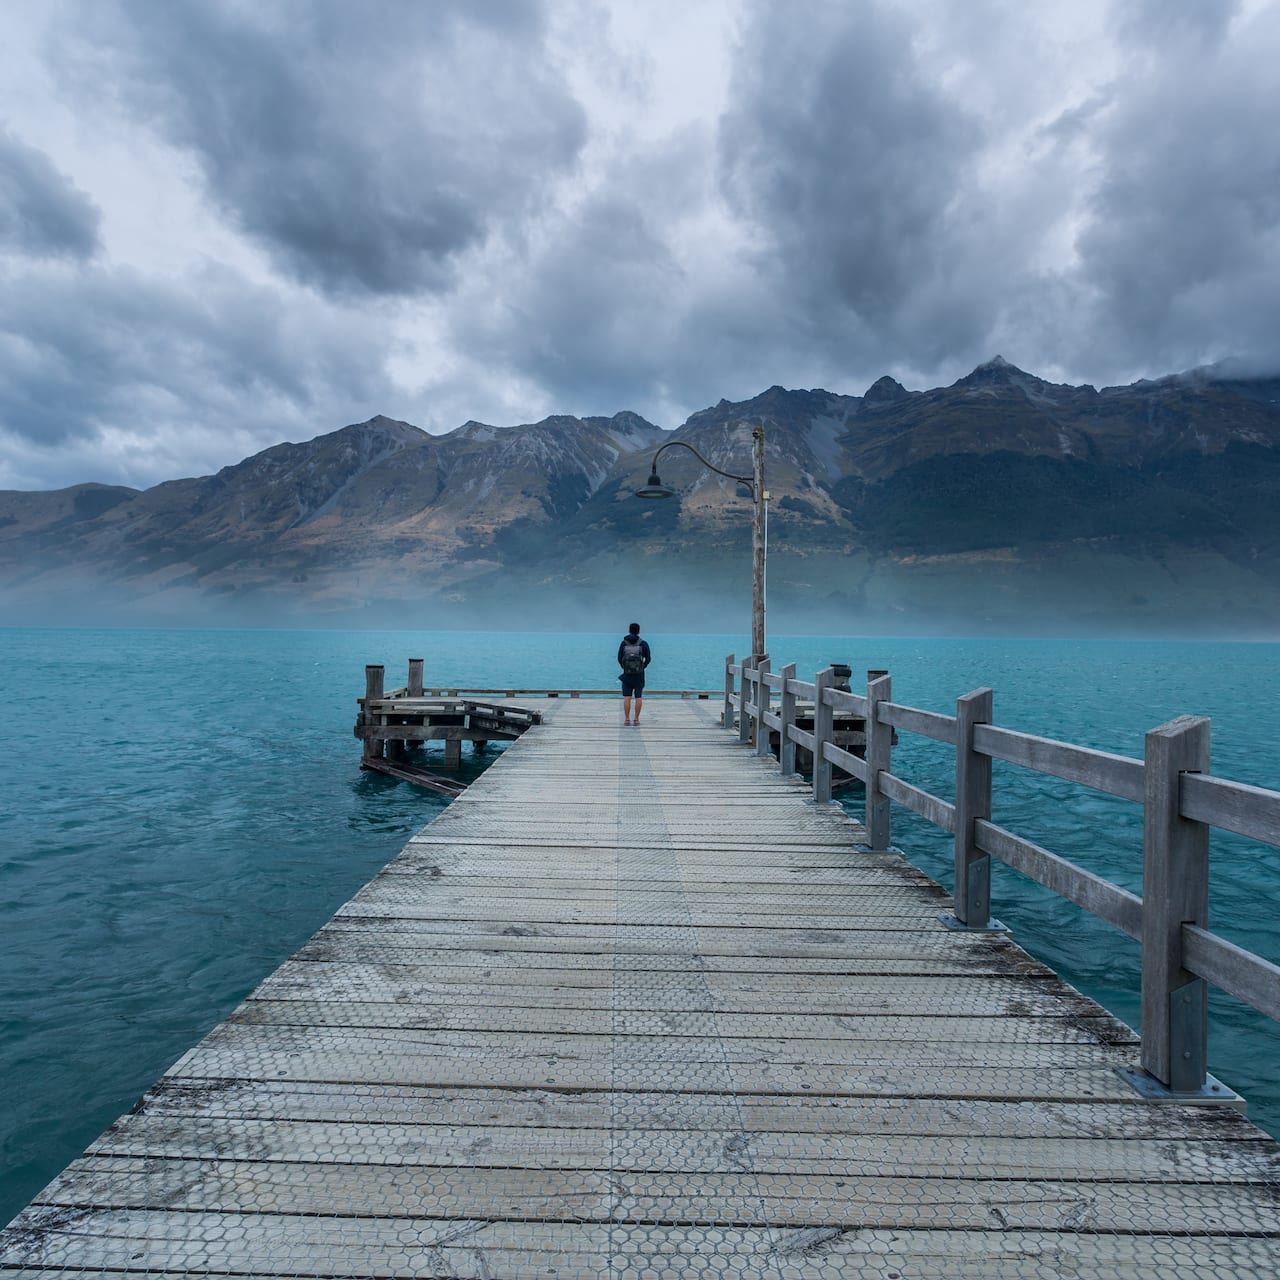 A person stands at the end of a long wooden dock that leads into the sea near a mountain range